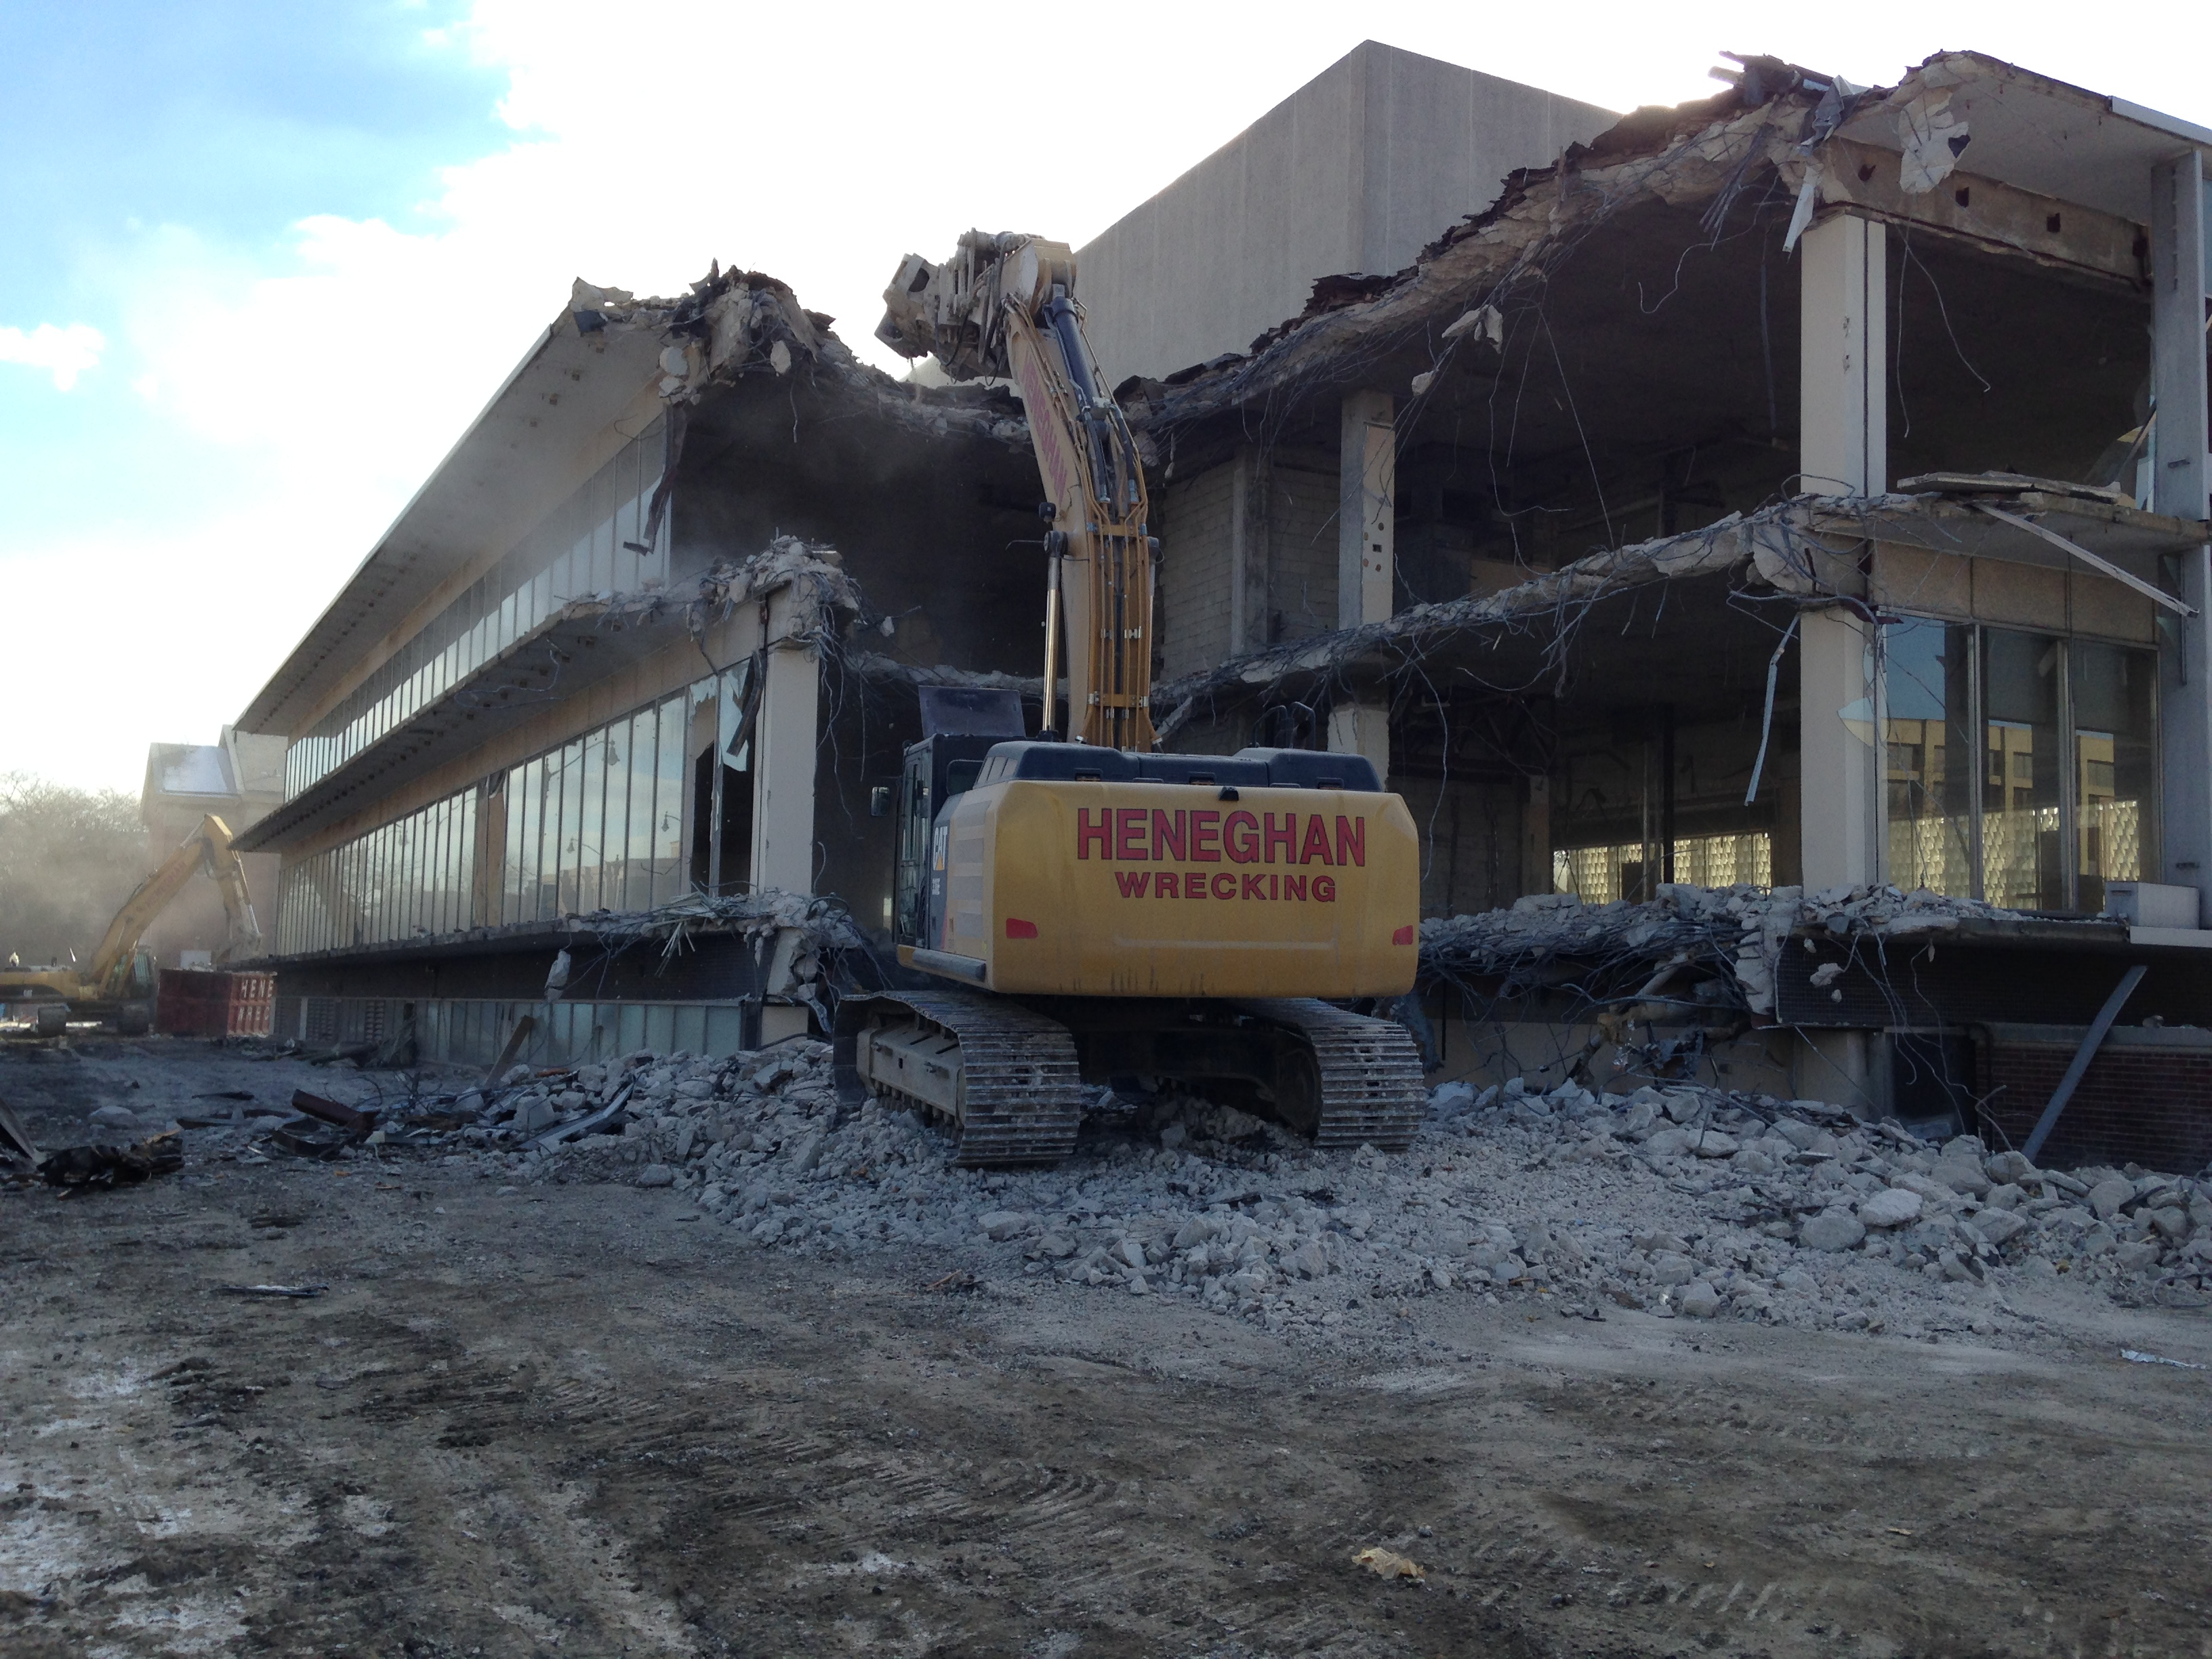 DePaul University demolition project, in Chicago IL